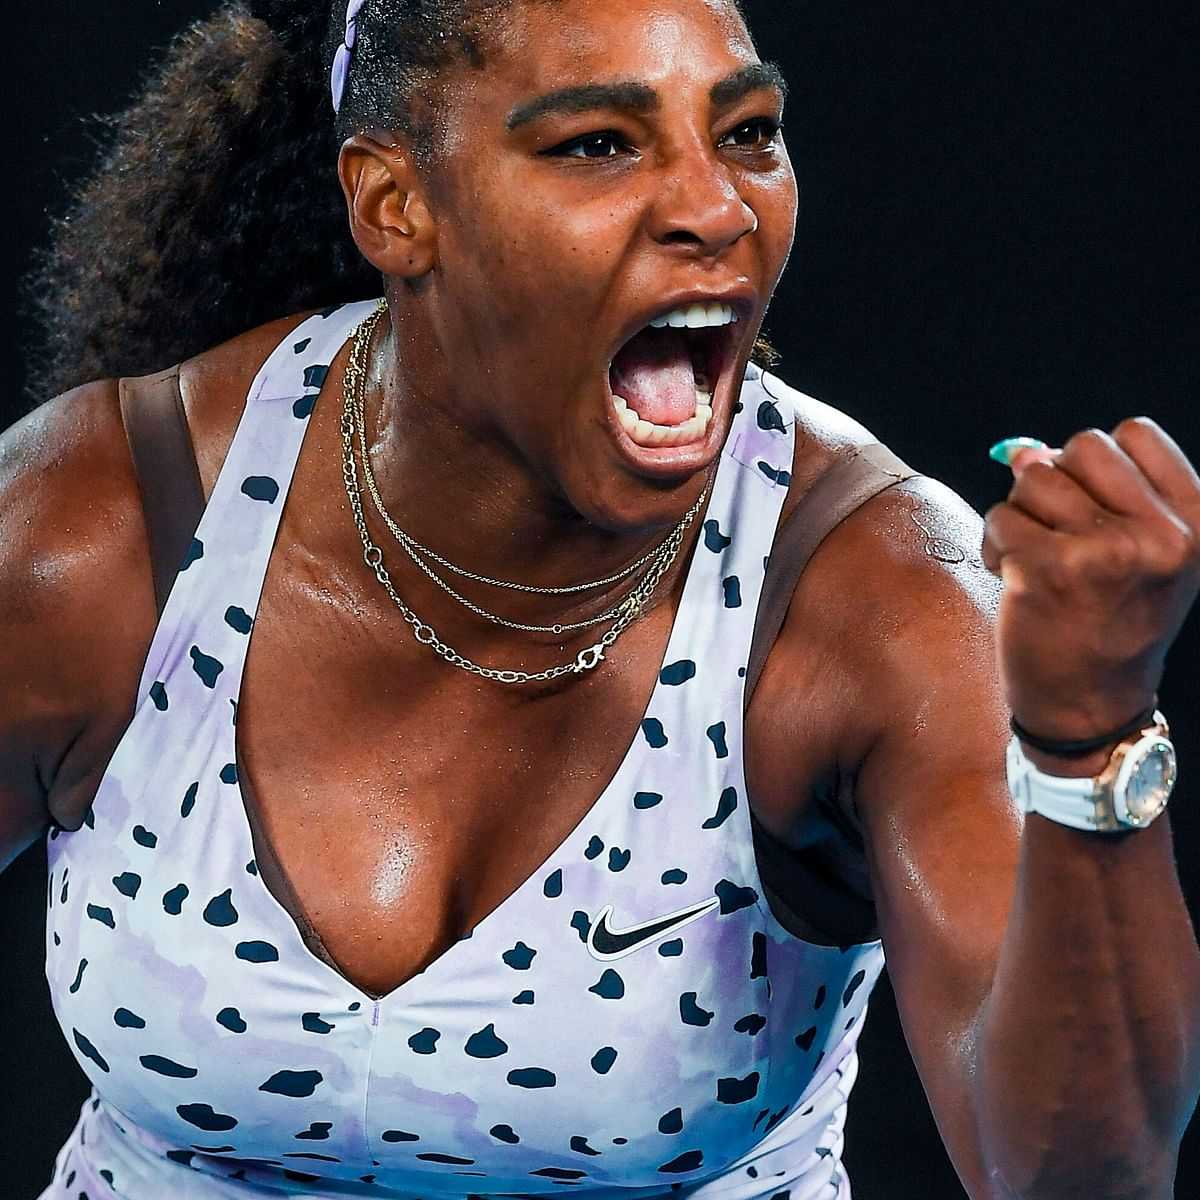 Below-par Serena fends off Zidansek to reach Melbourne third round